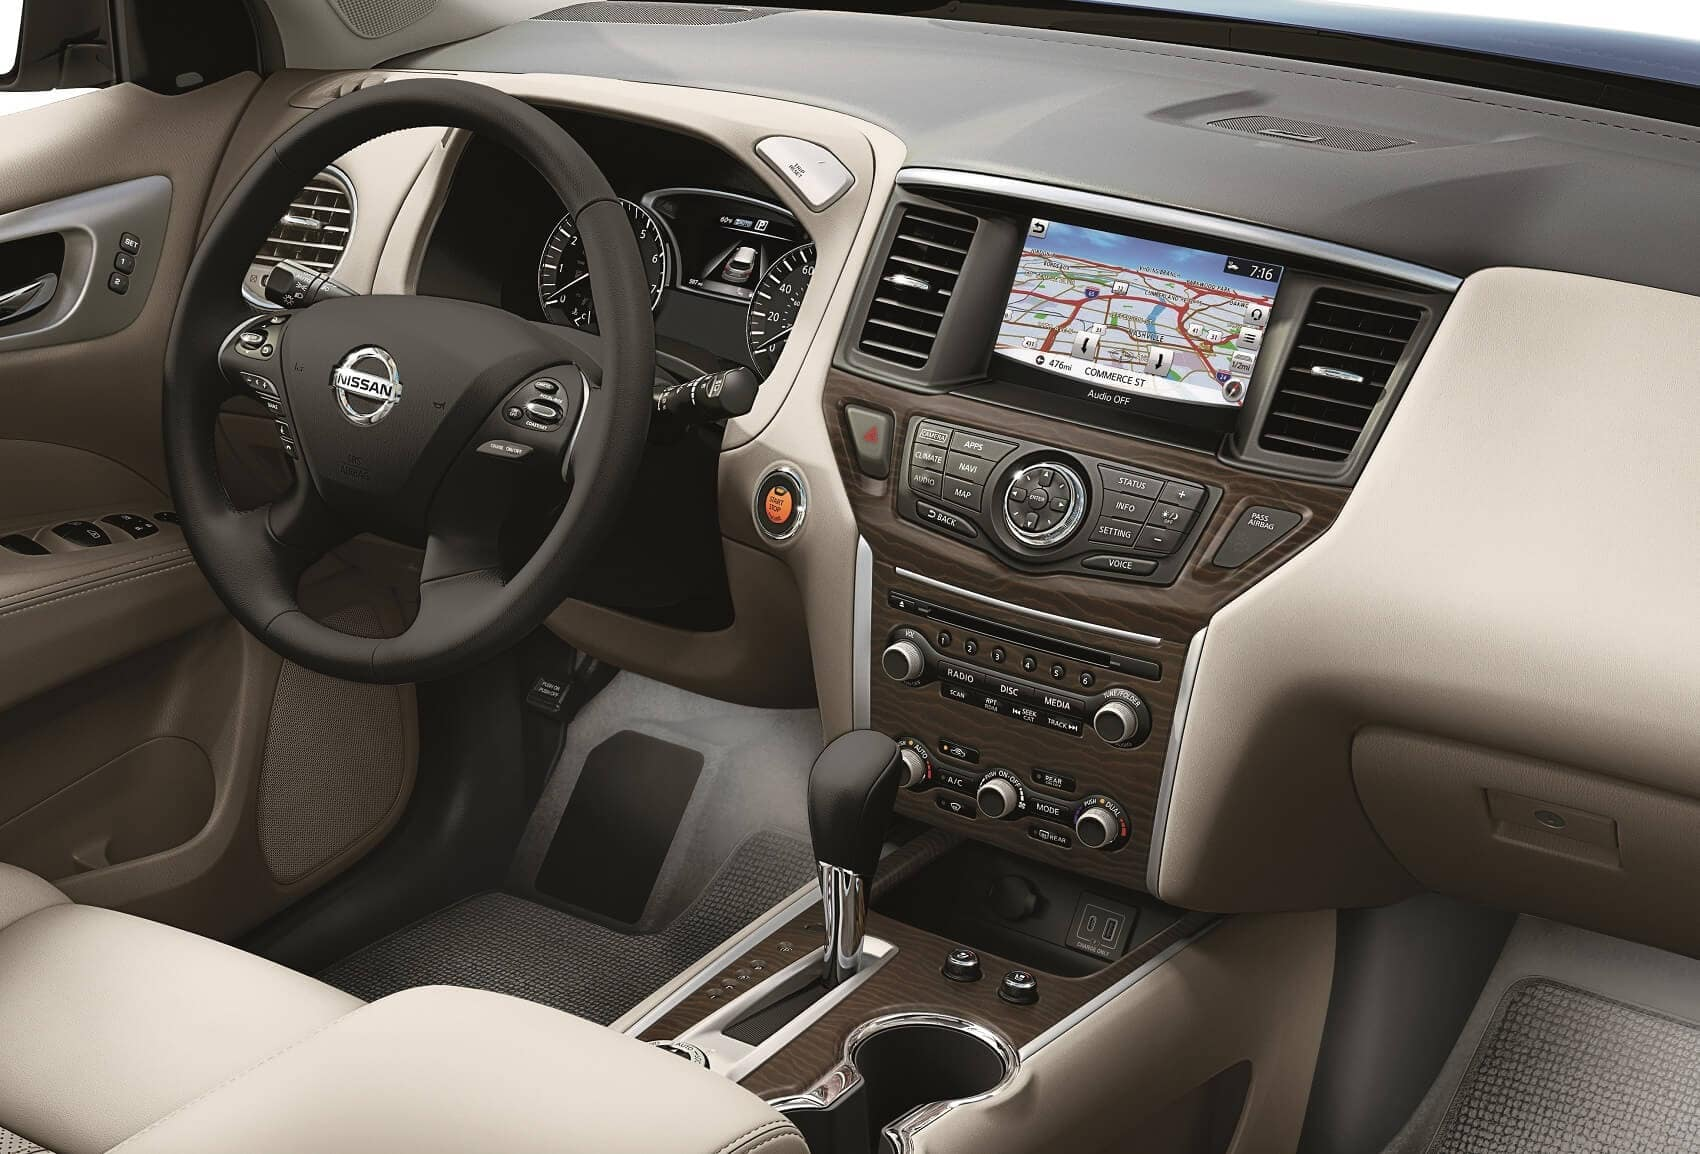 2019 Nissan Pathfinder Interior Technology